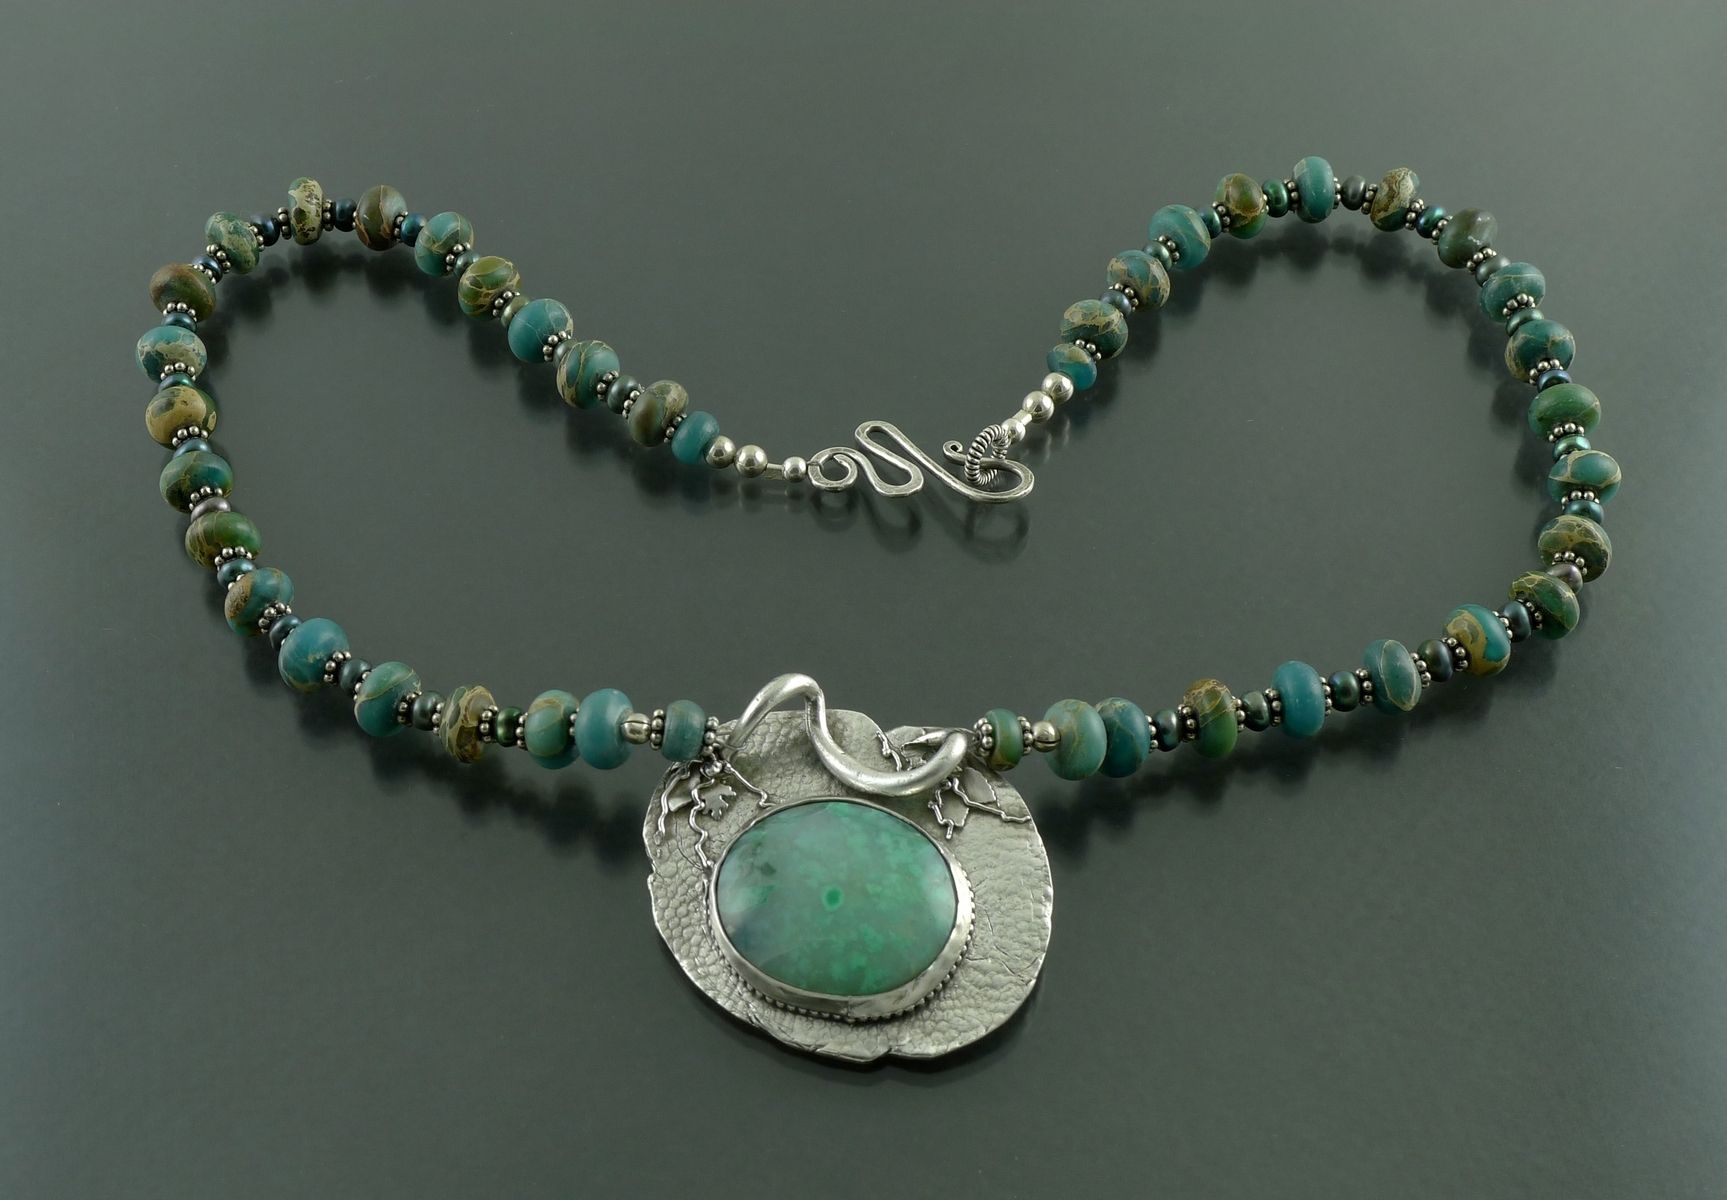 chrysopras of ora diamonds the from chrysoprase with betel product necklace playing diamond spring gold oraspringjewelry made collection pendant cosmos and